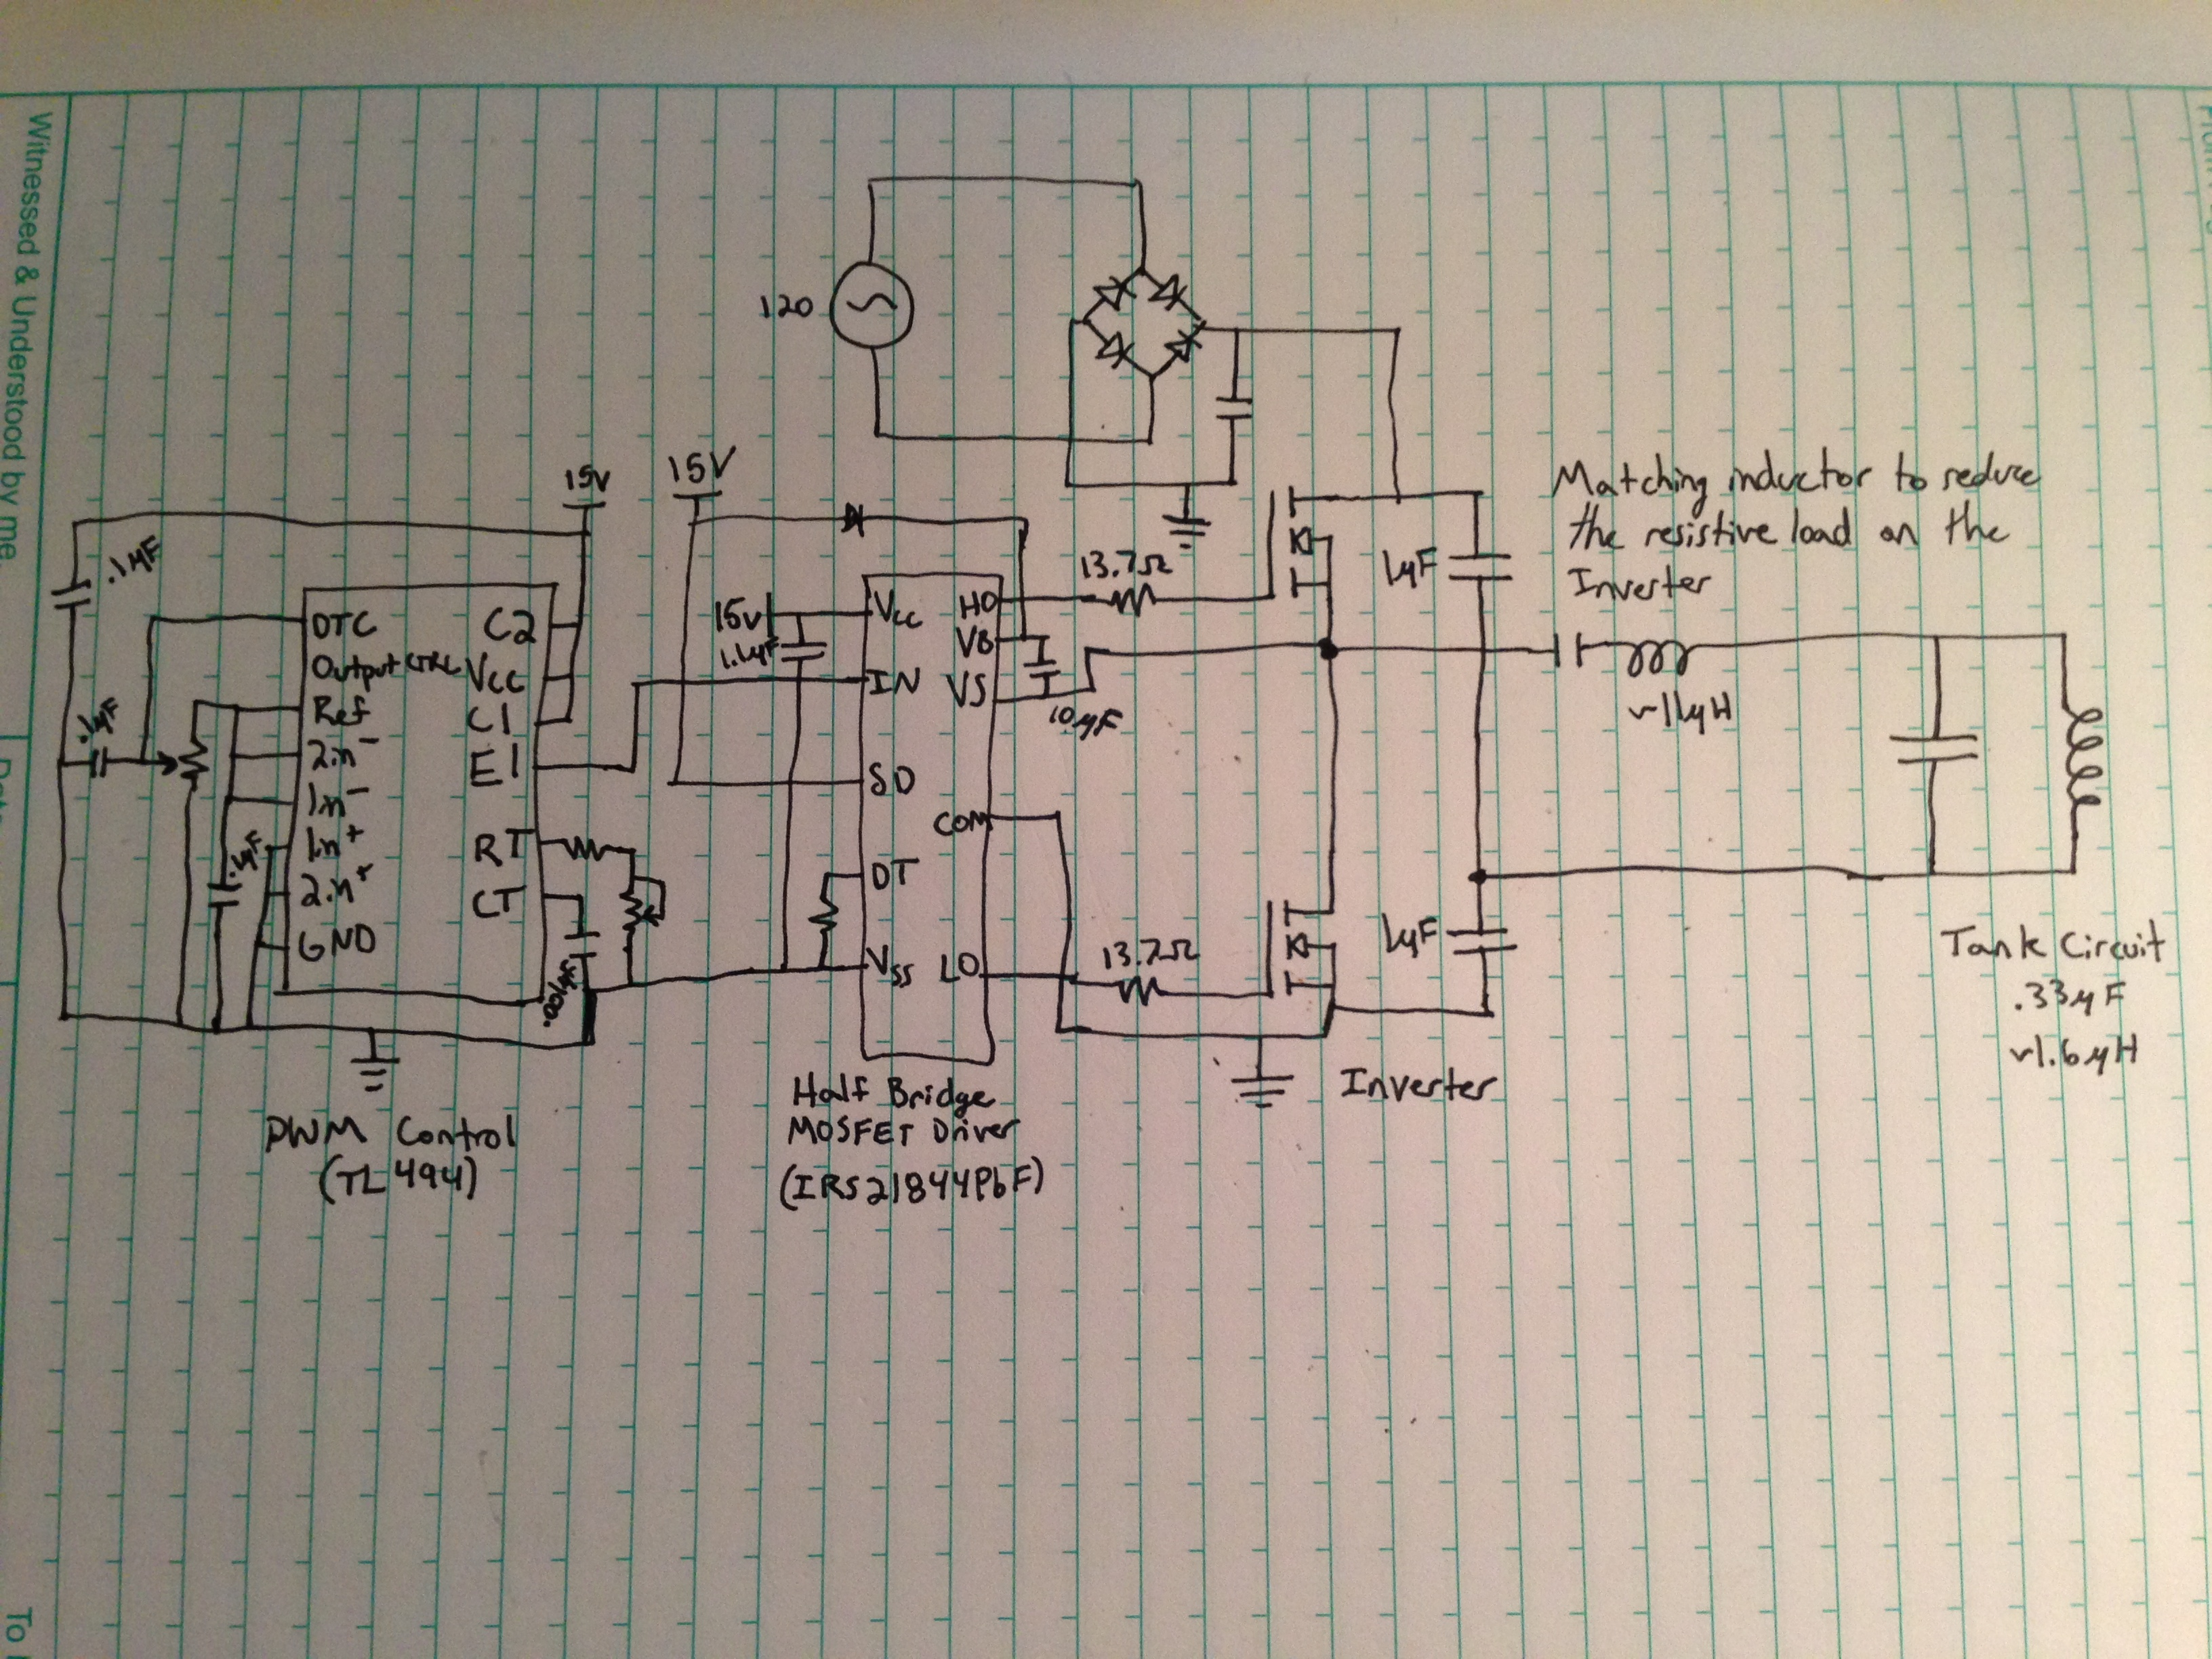 Induction Heater Circuit Schematic